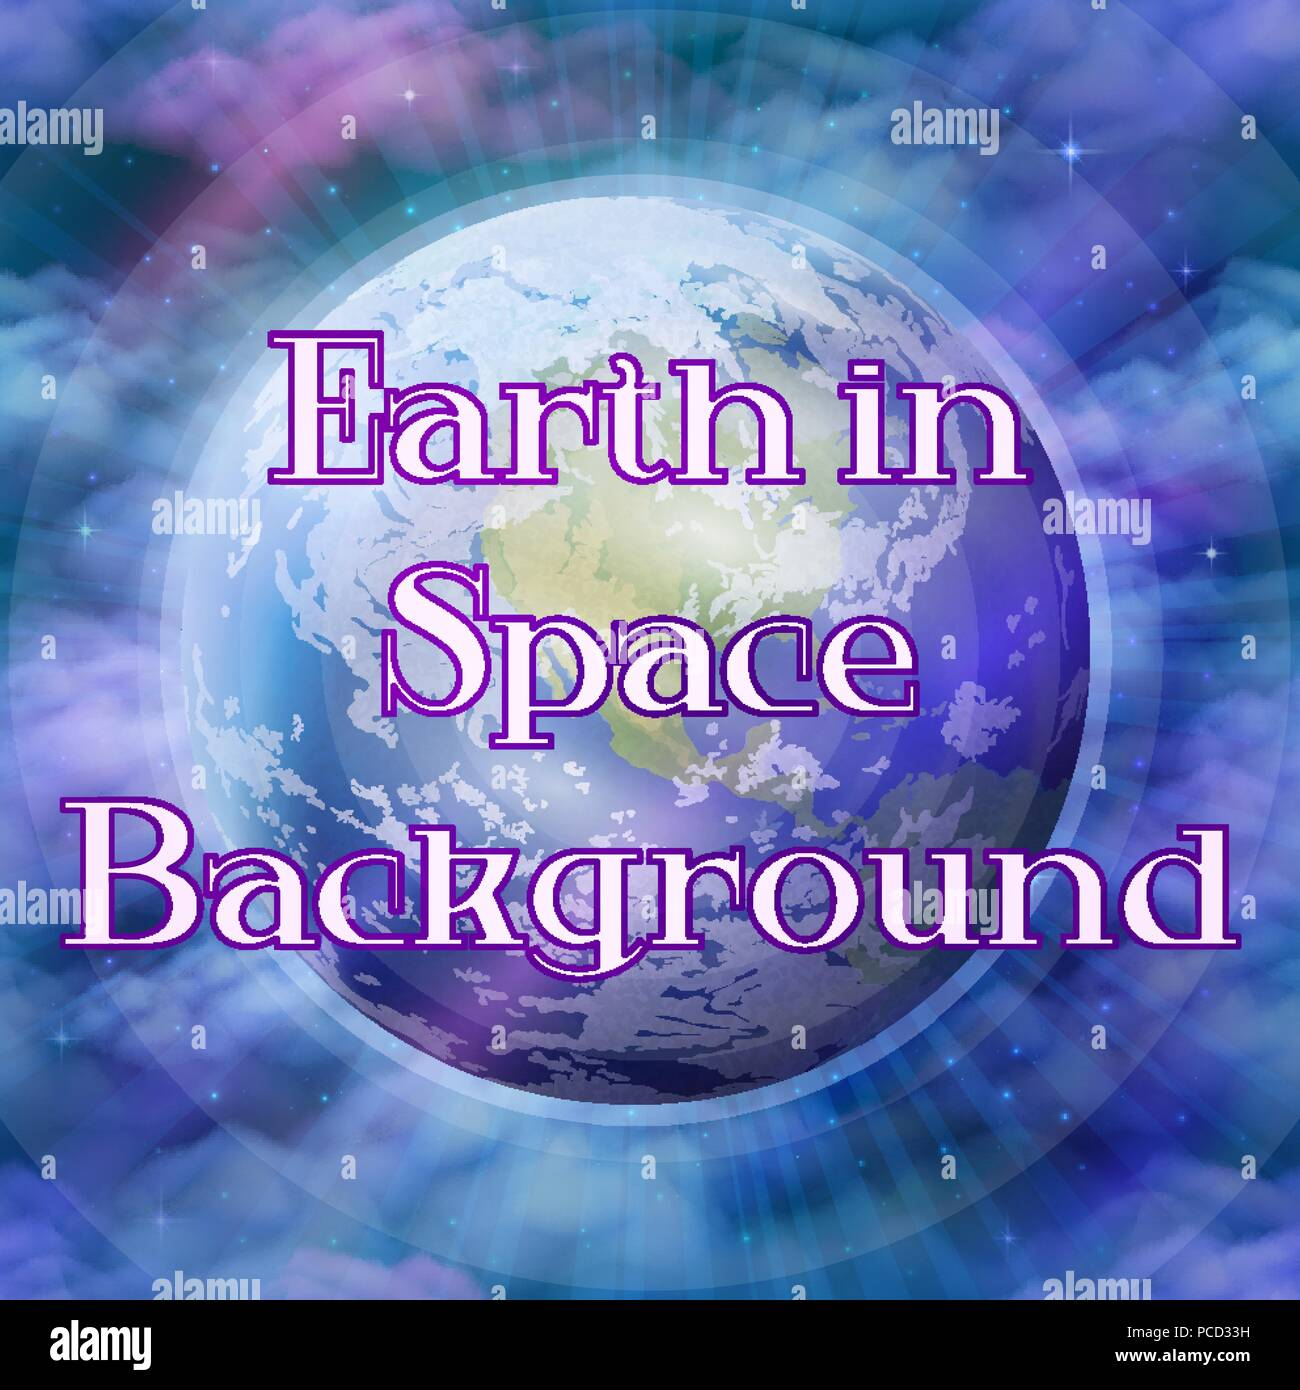 Planet Earth in Space - Stock Image